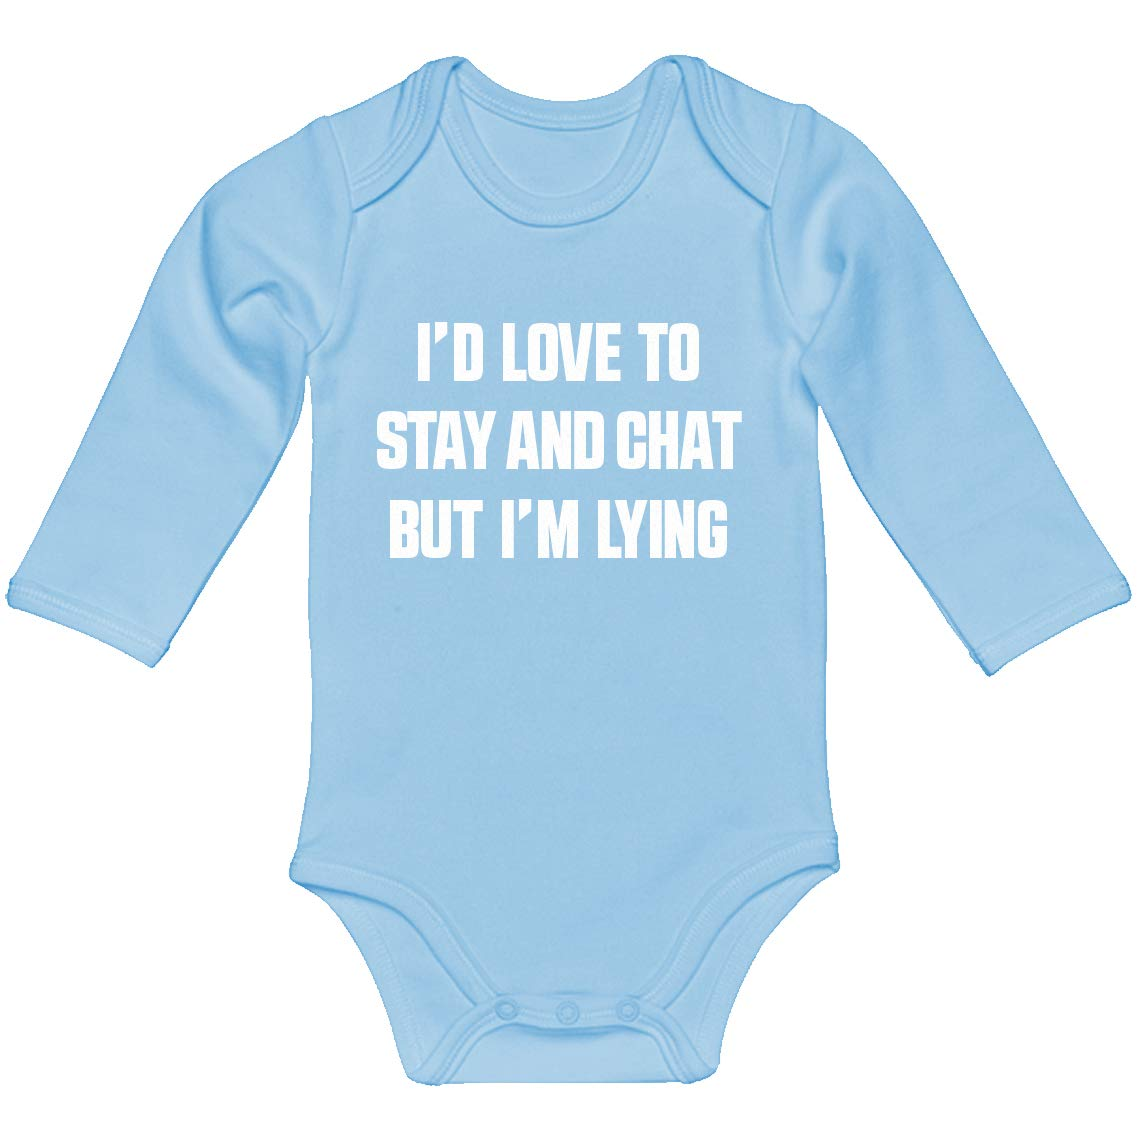 Baby Romper Id Love to Stay and Chat but Im Lying 100/% Cotton Long Sleeve Infant Bodysuit